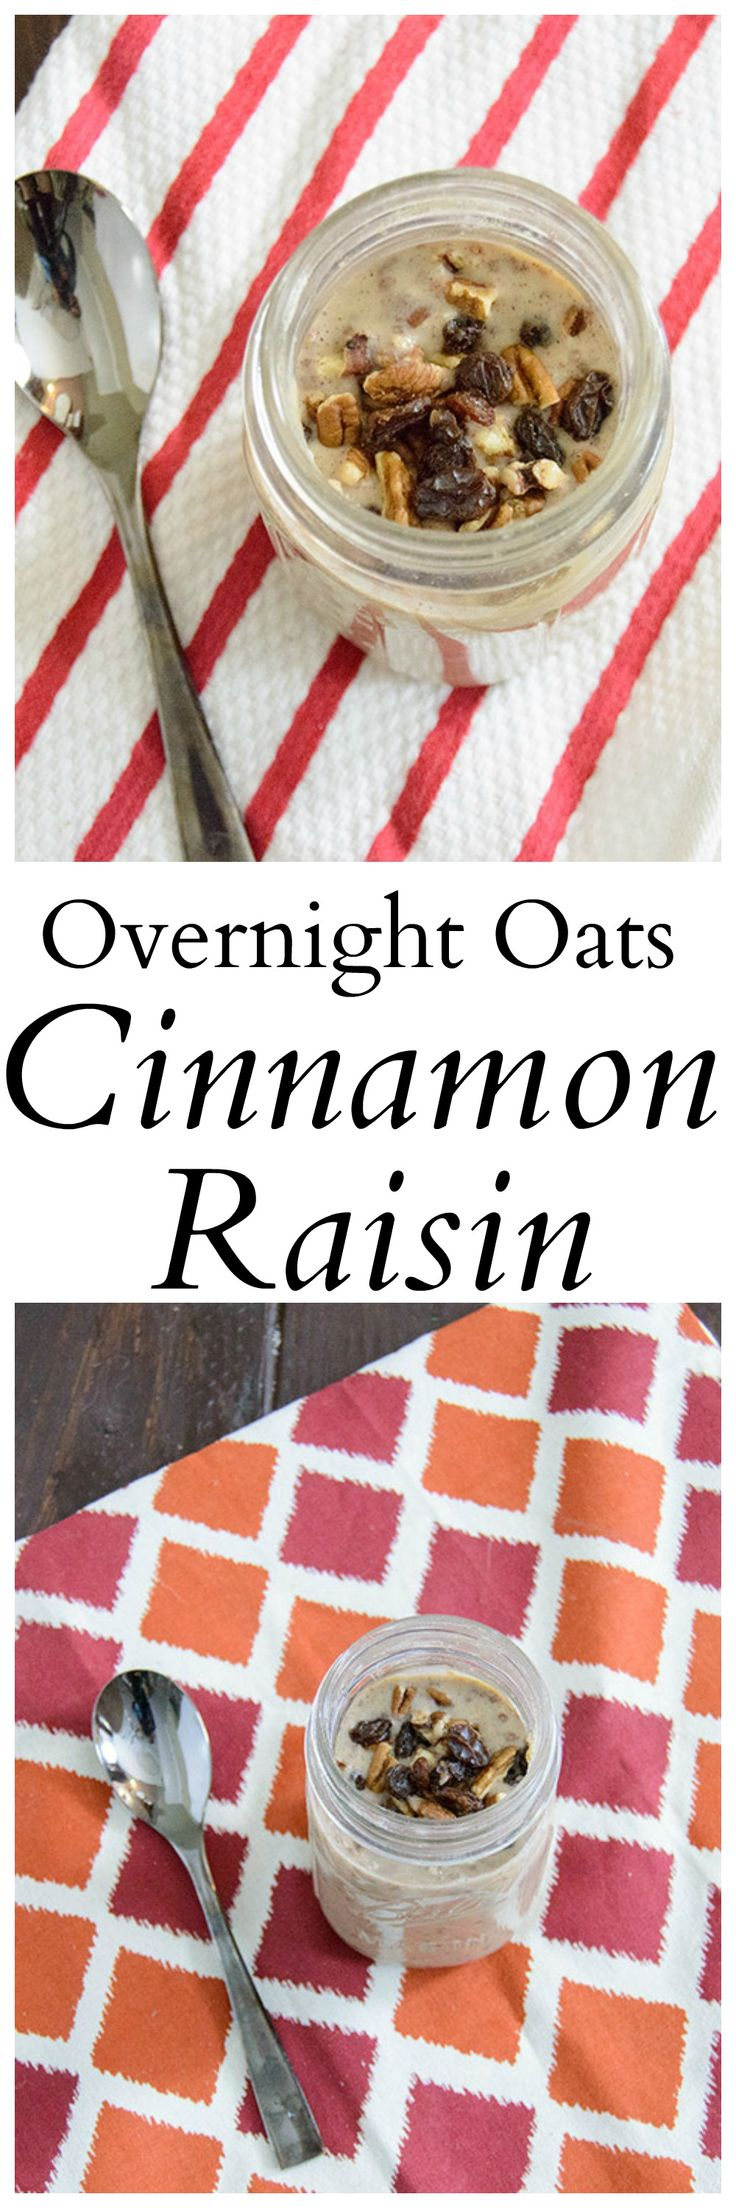 Cinnamon Raisin Overnight Oats recipe - no cooking required! Gluten-free, vegan, high protein and so easy!